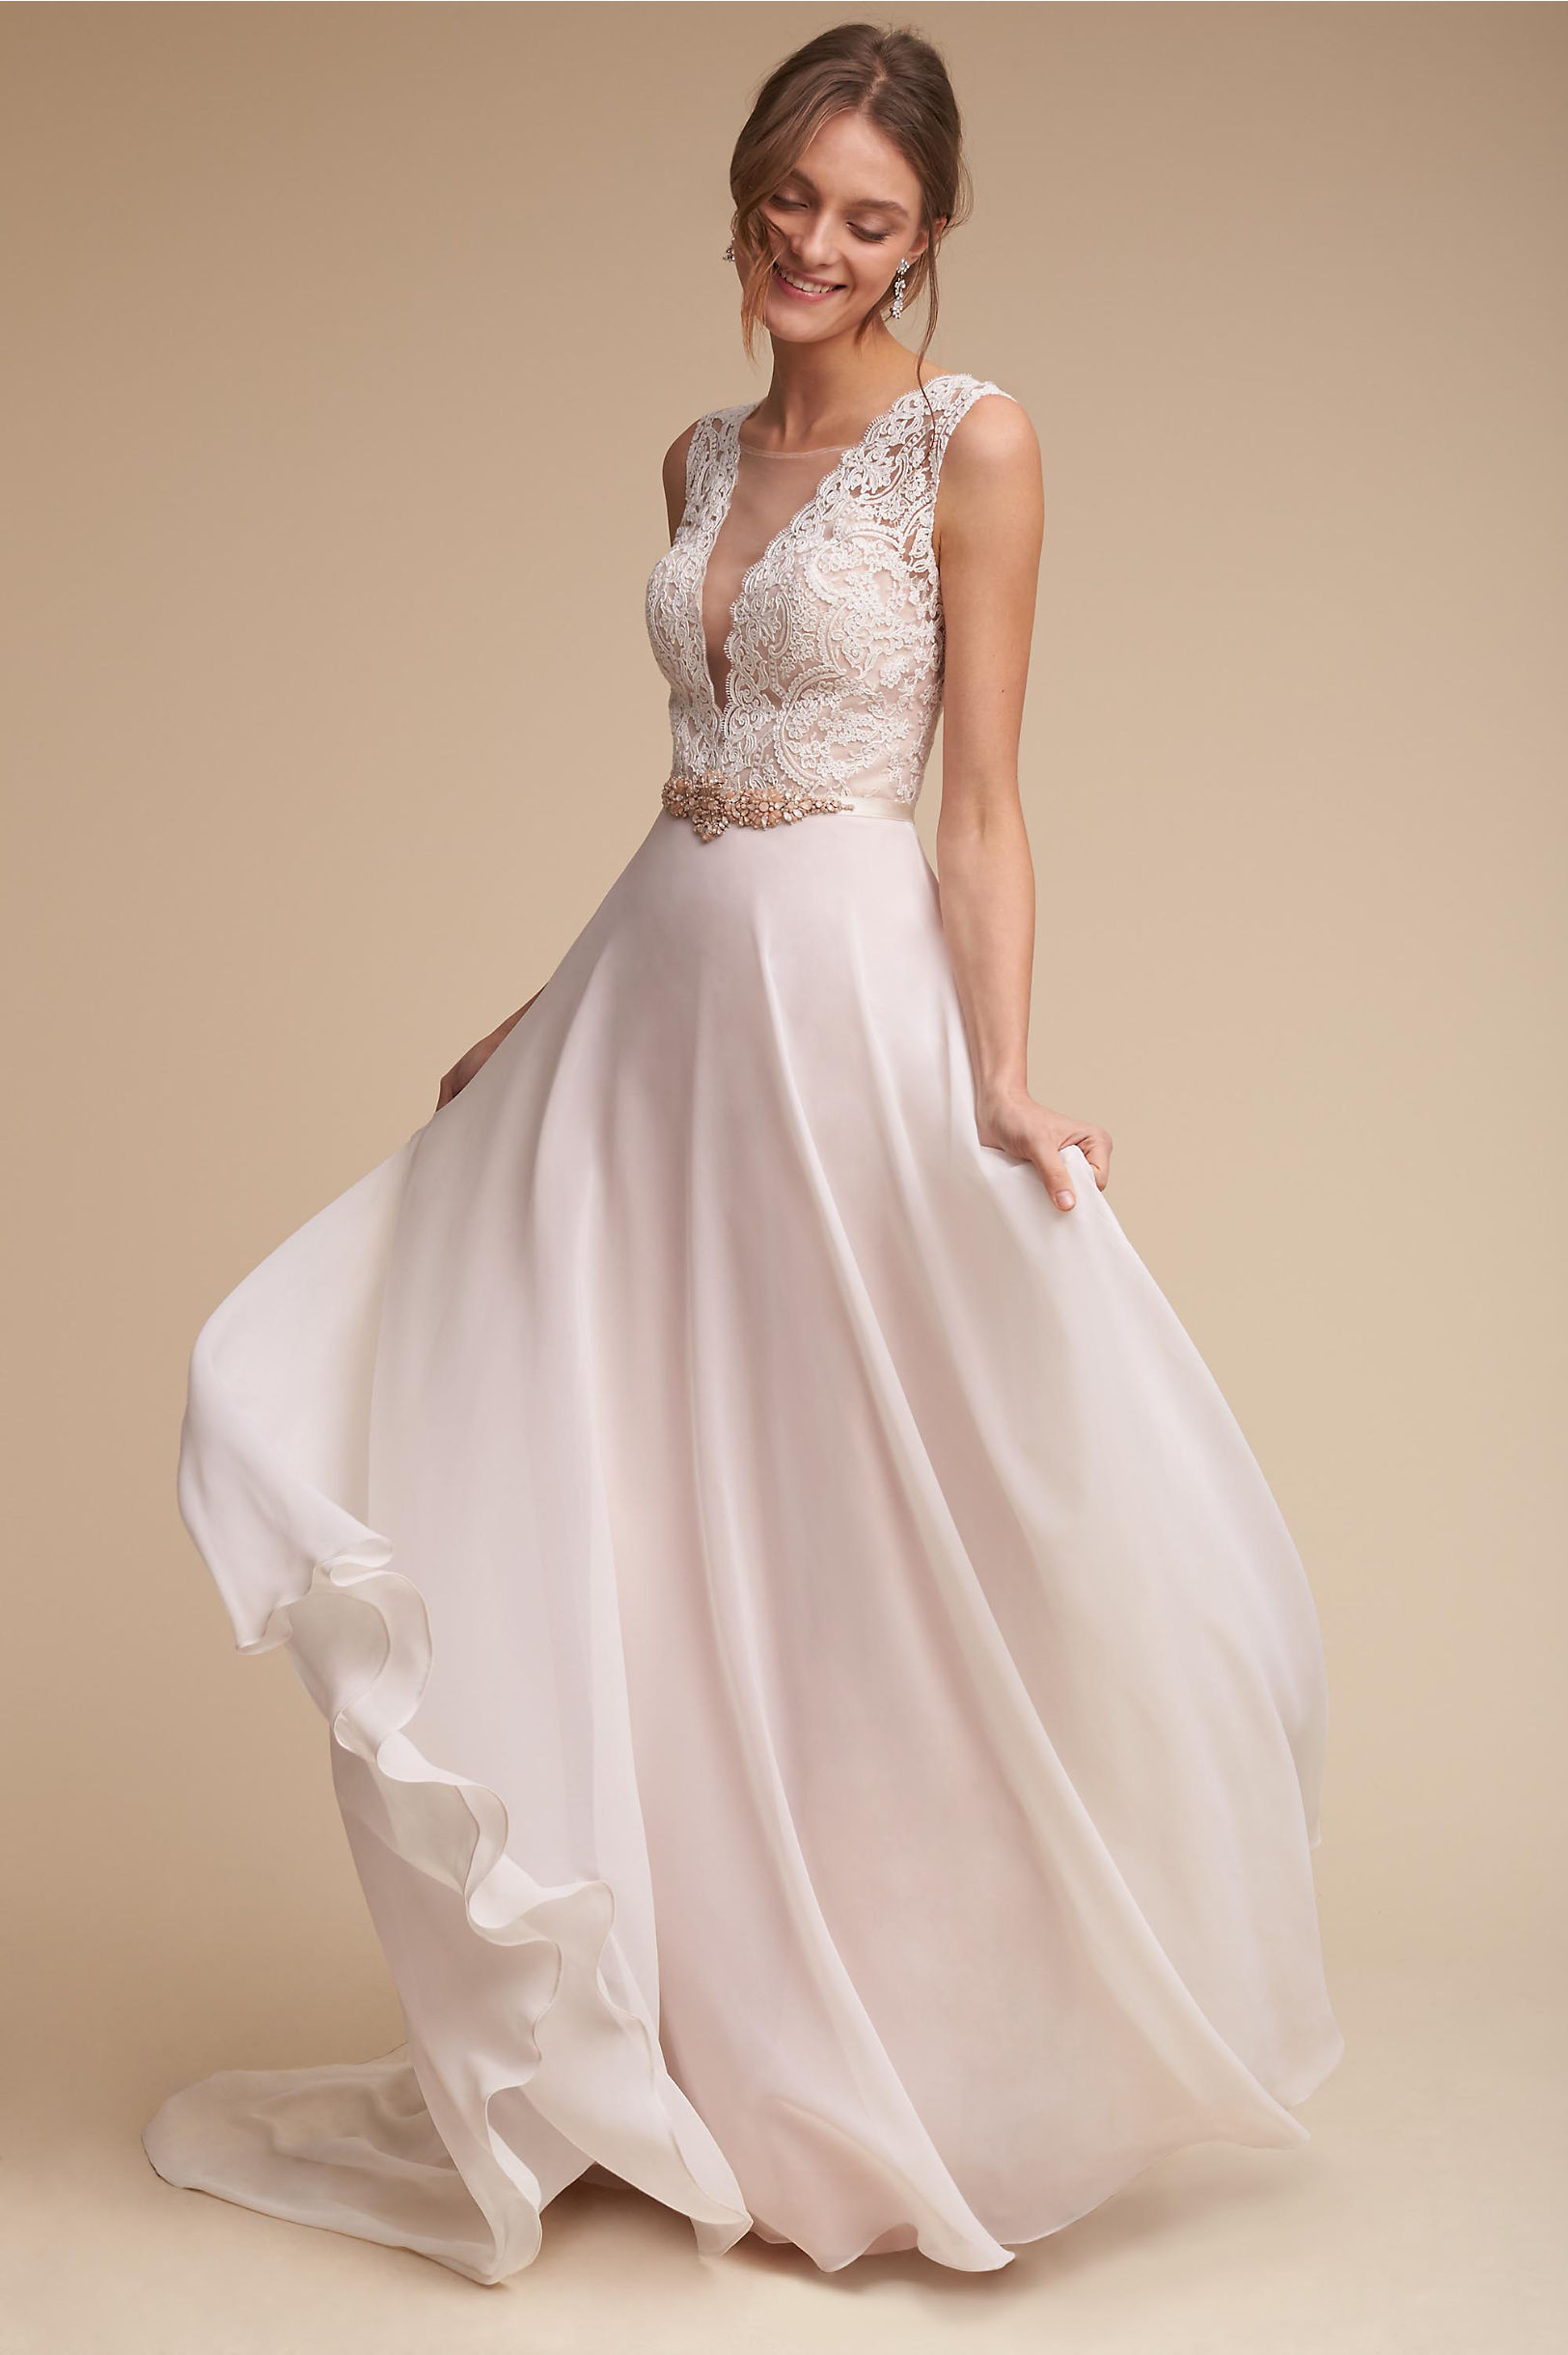 A-Line Wedding Dresses | 2015 A-Line Wedding Dress Styles | BHLDN